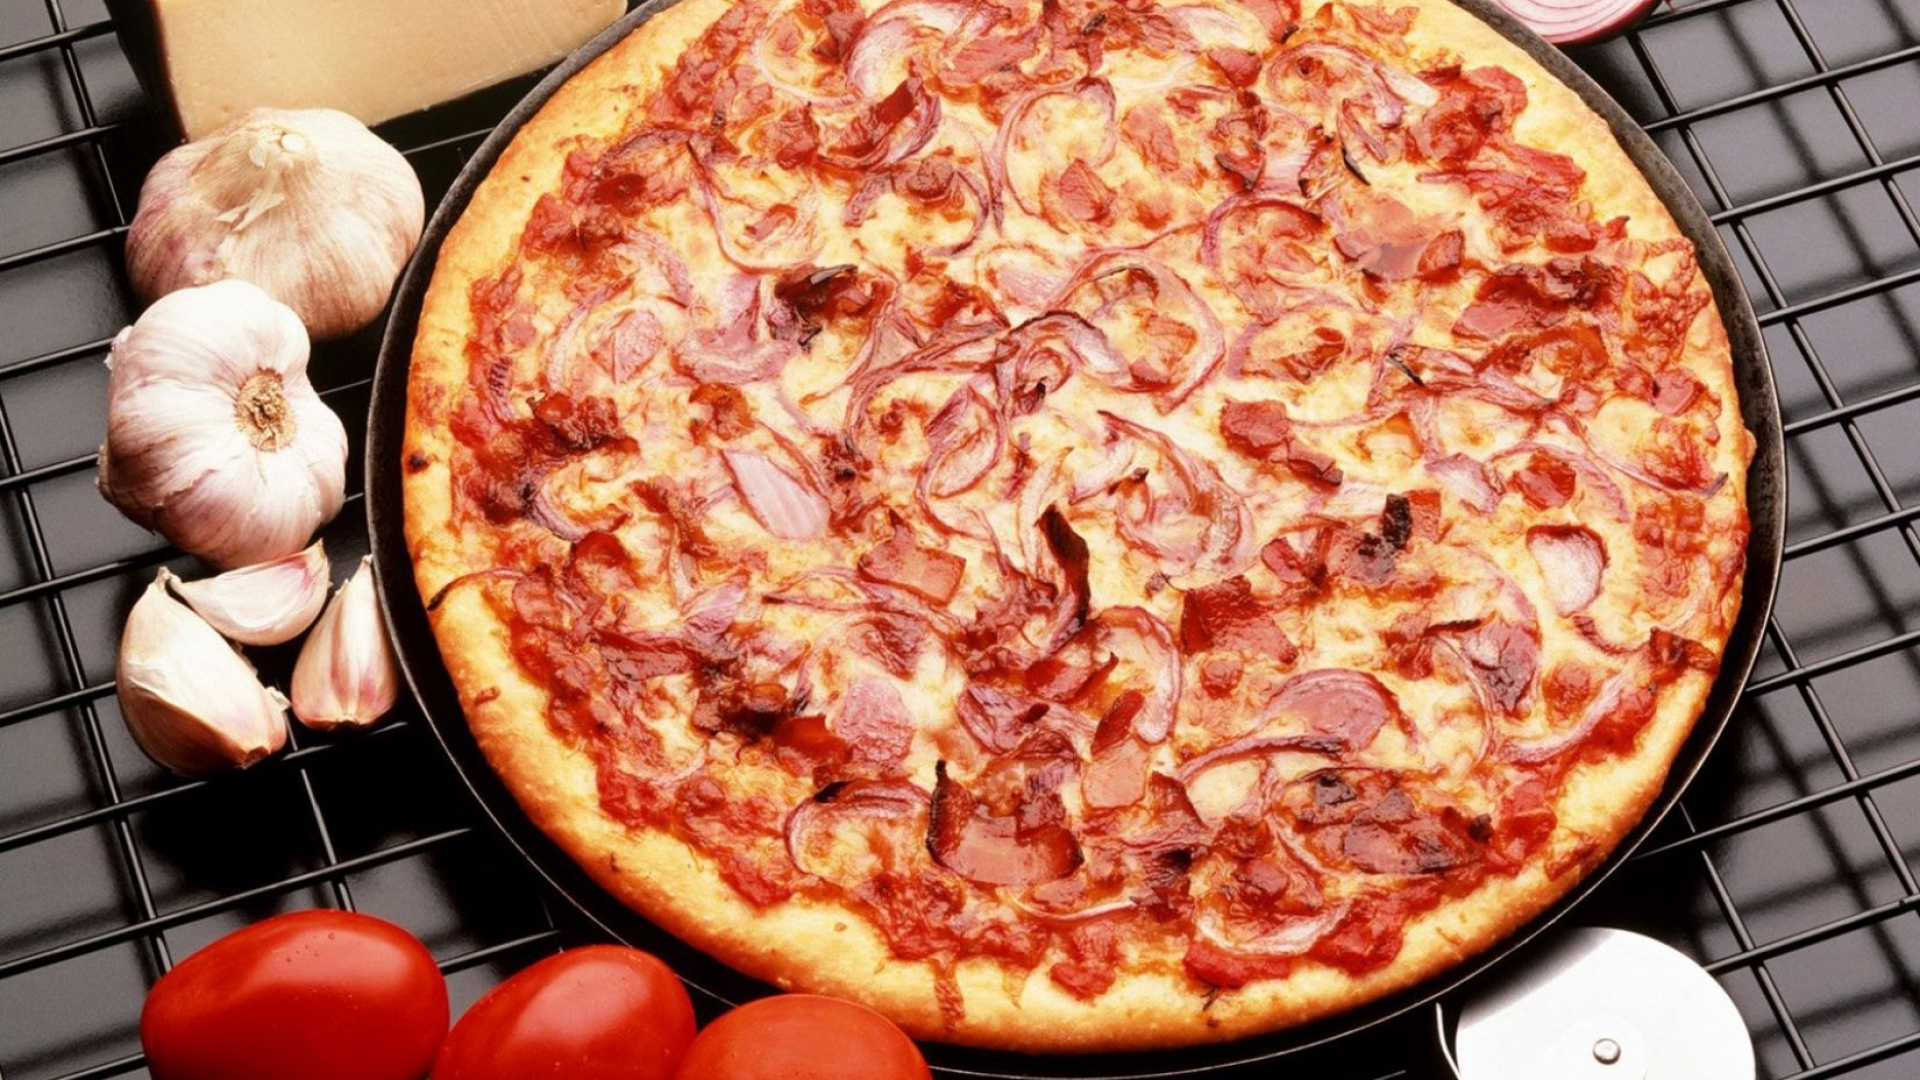 Download Wallpaper 1920x1080 Pizza, Sausage, Onions